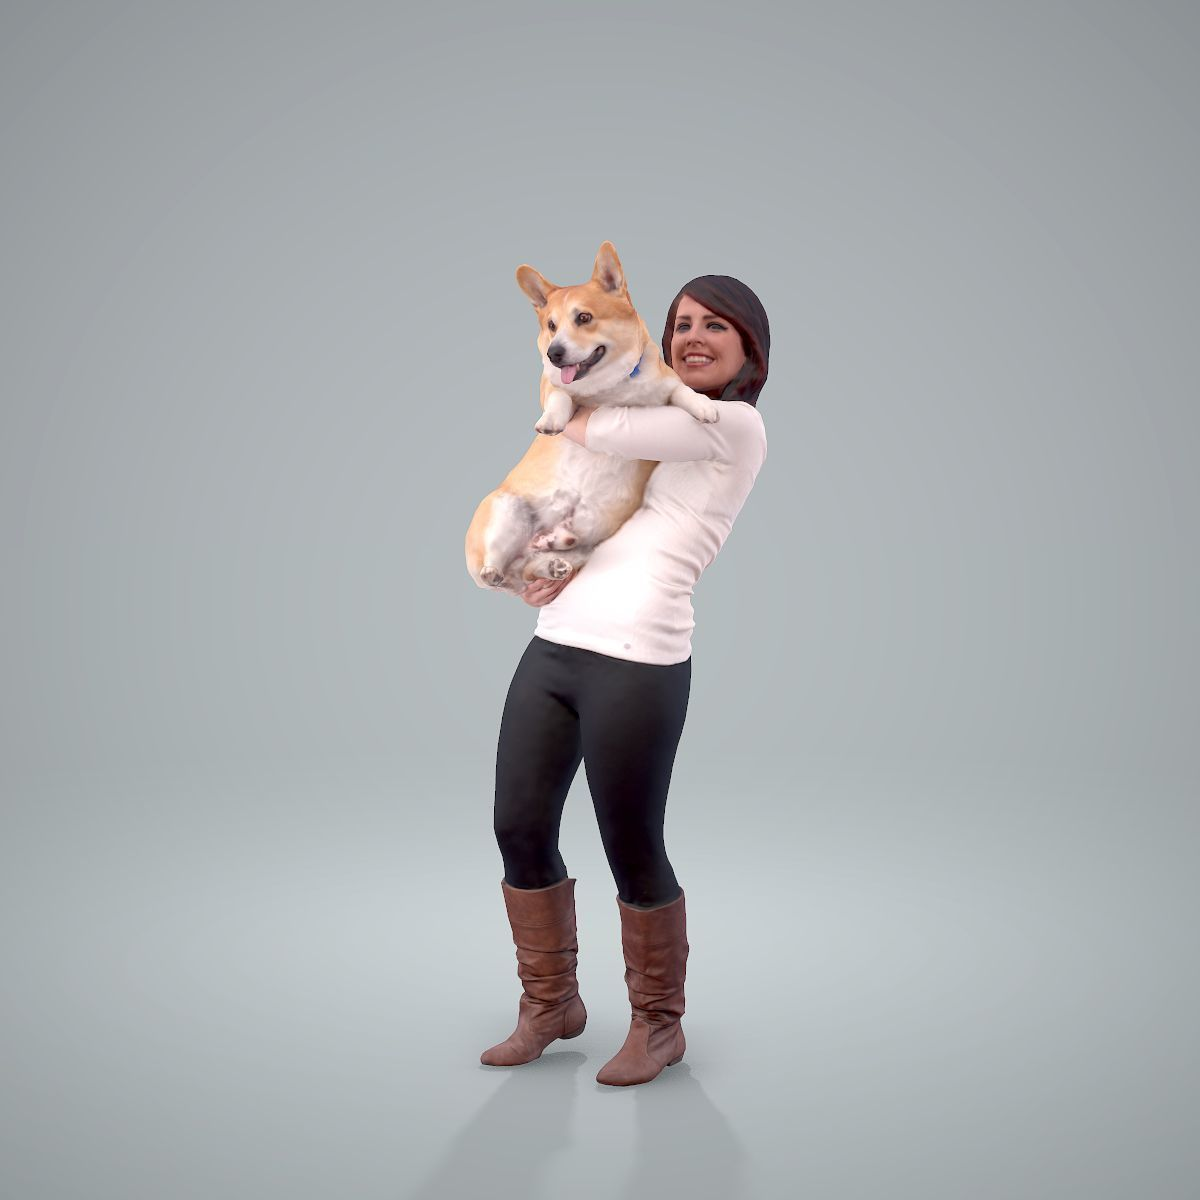 Woman Holding Dog CWom0209-HD2-O01P01-S